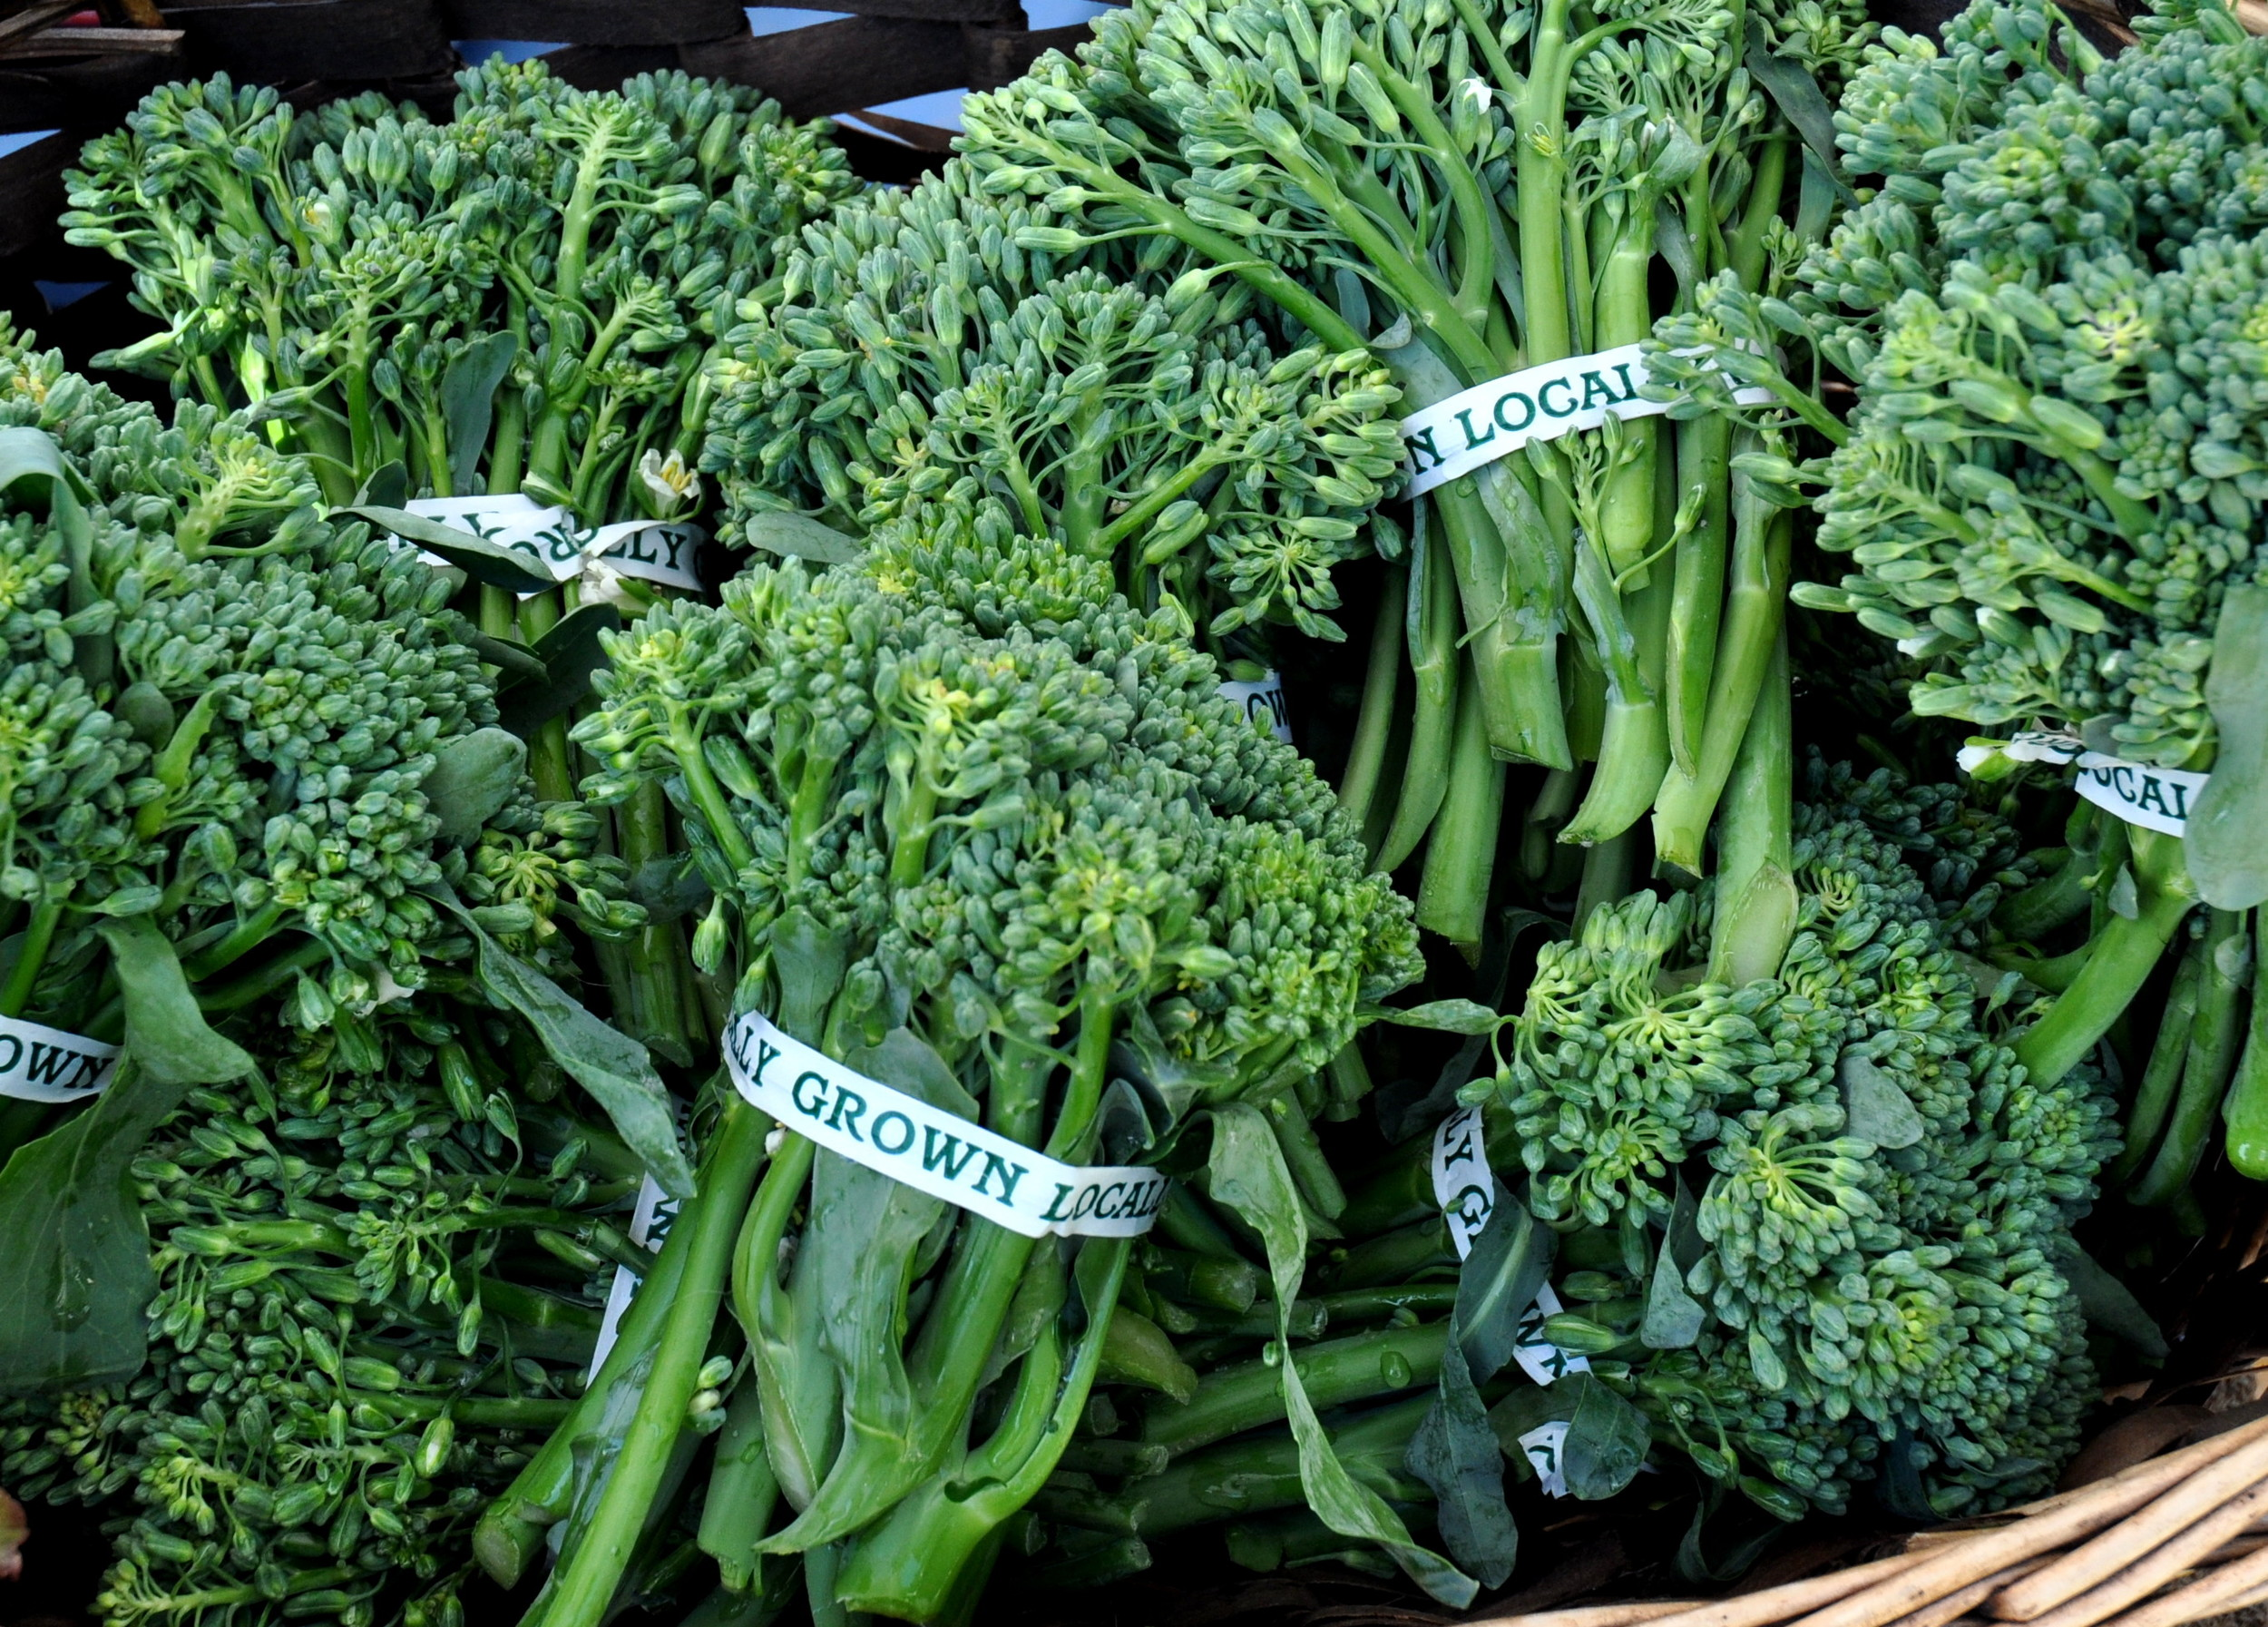 Broccolini from City Grown Farm. Photo copyright 2013 by Zachary D. Lyons.